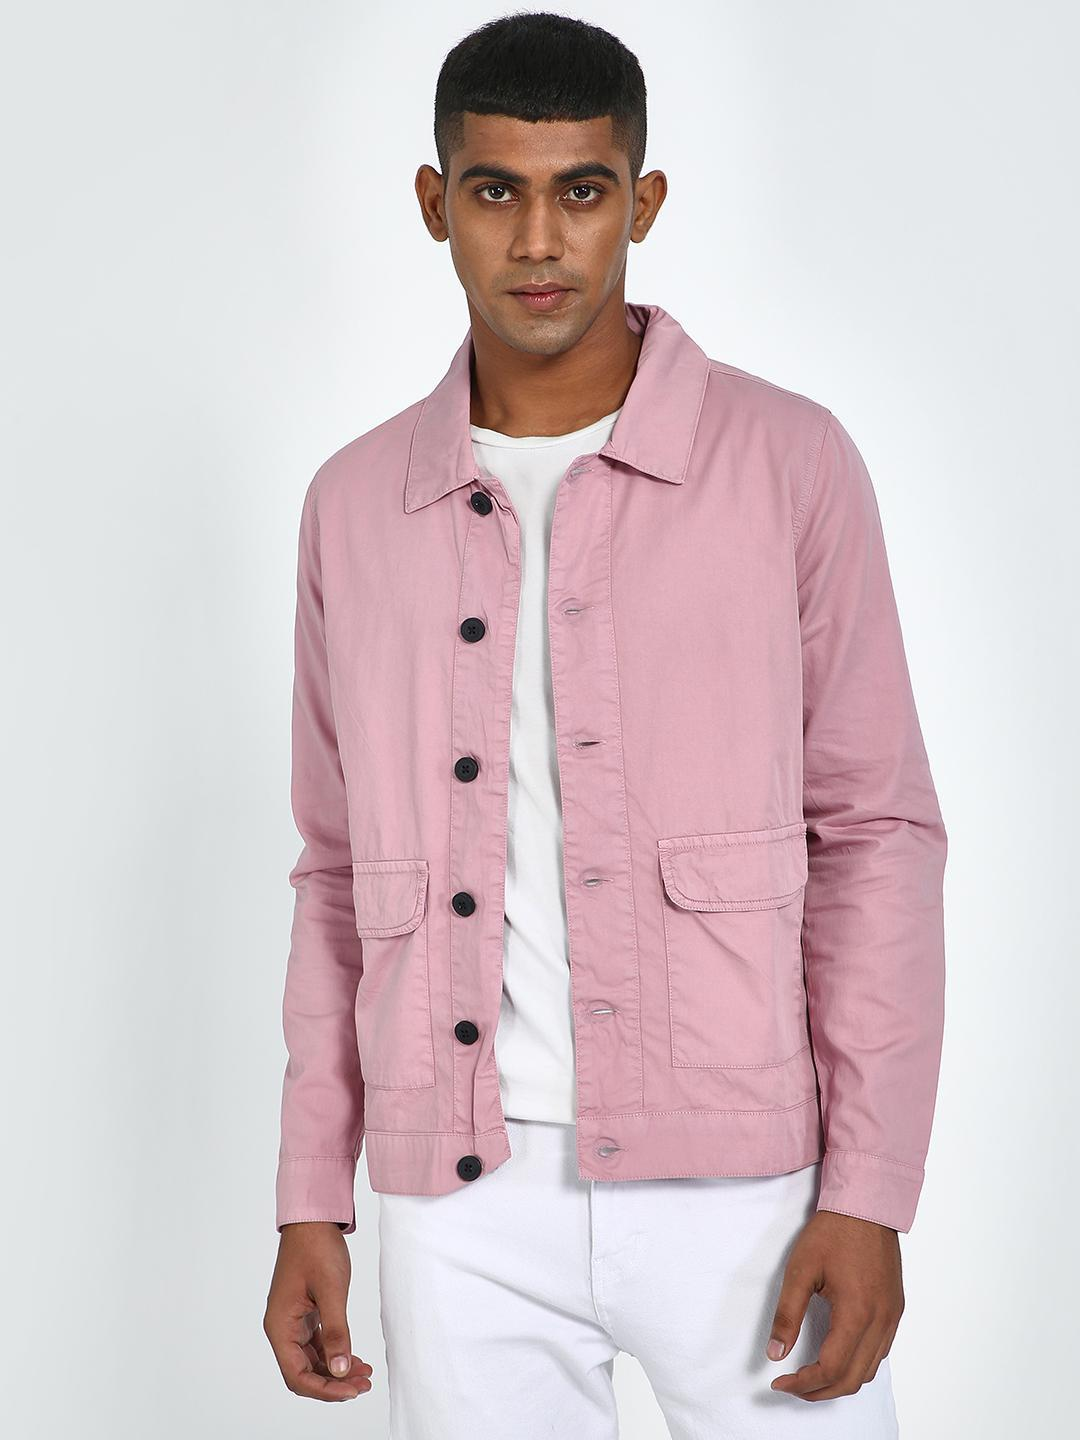 Blue Saint Pink Twin Pockets Jacket 1